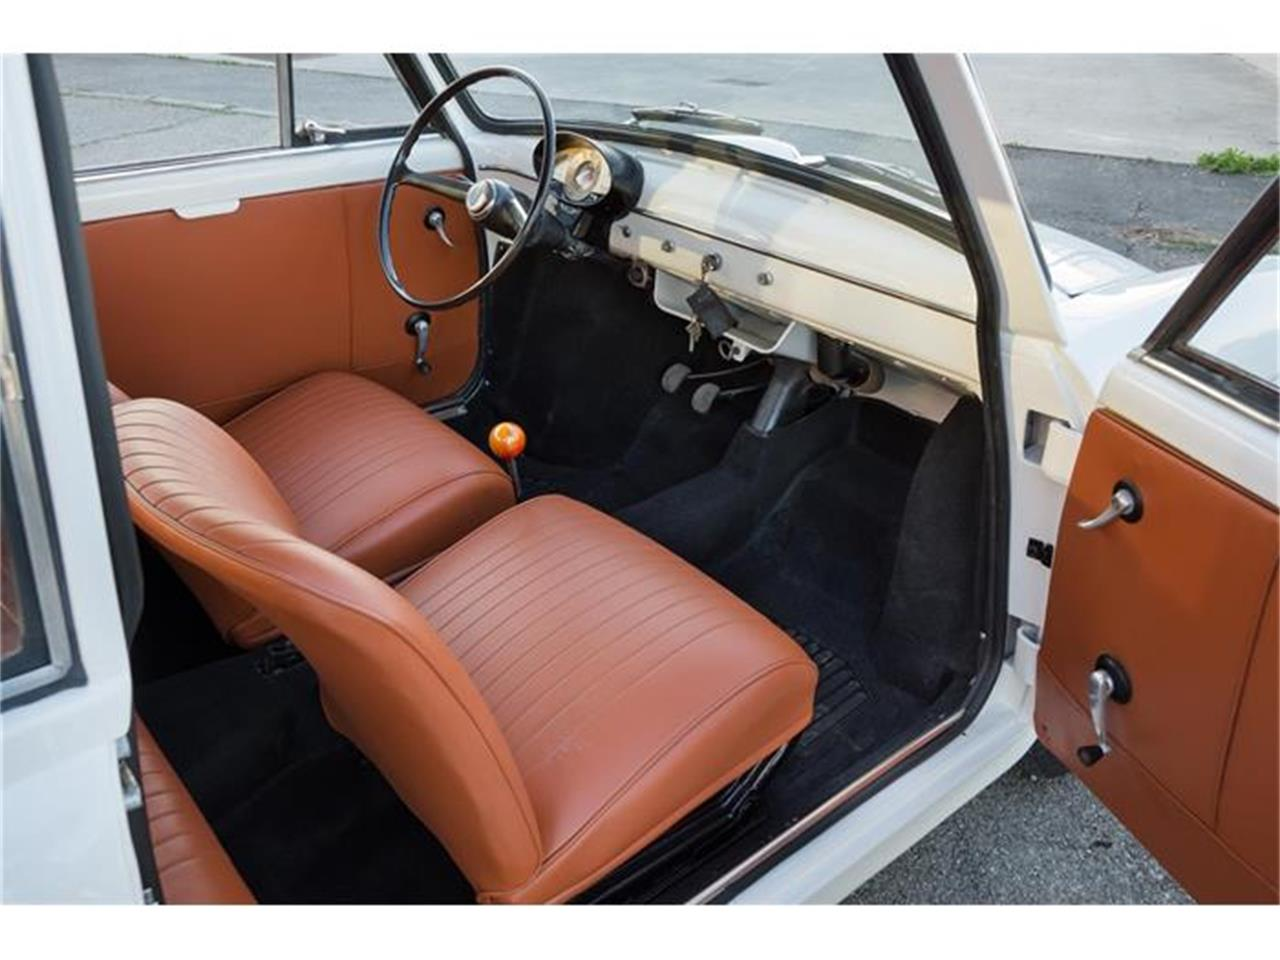 1964 Autobianchi Bianchina Berlina for sale in Conroe, TX – photo 4